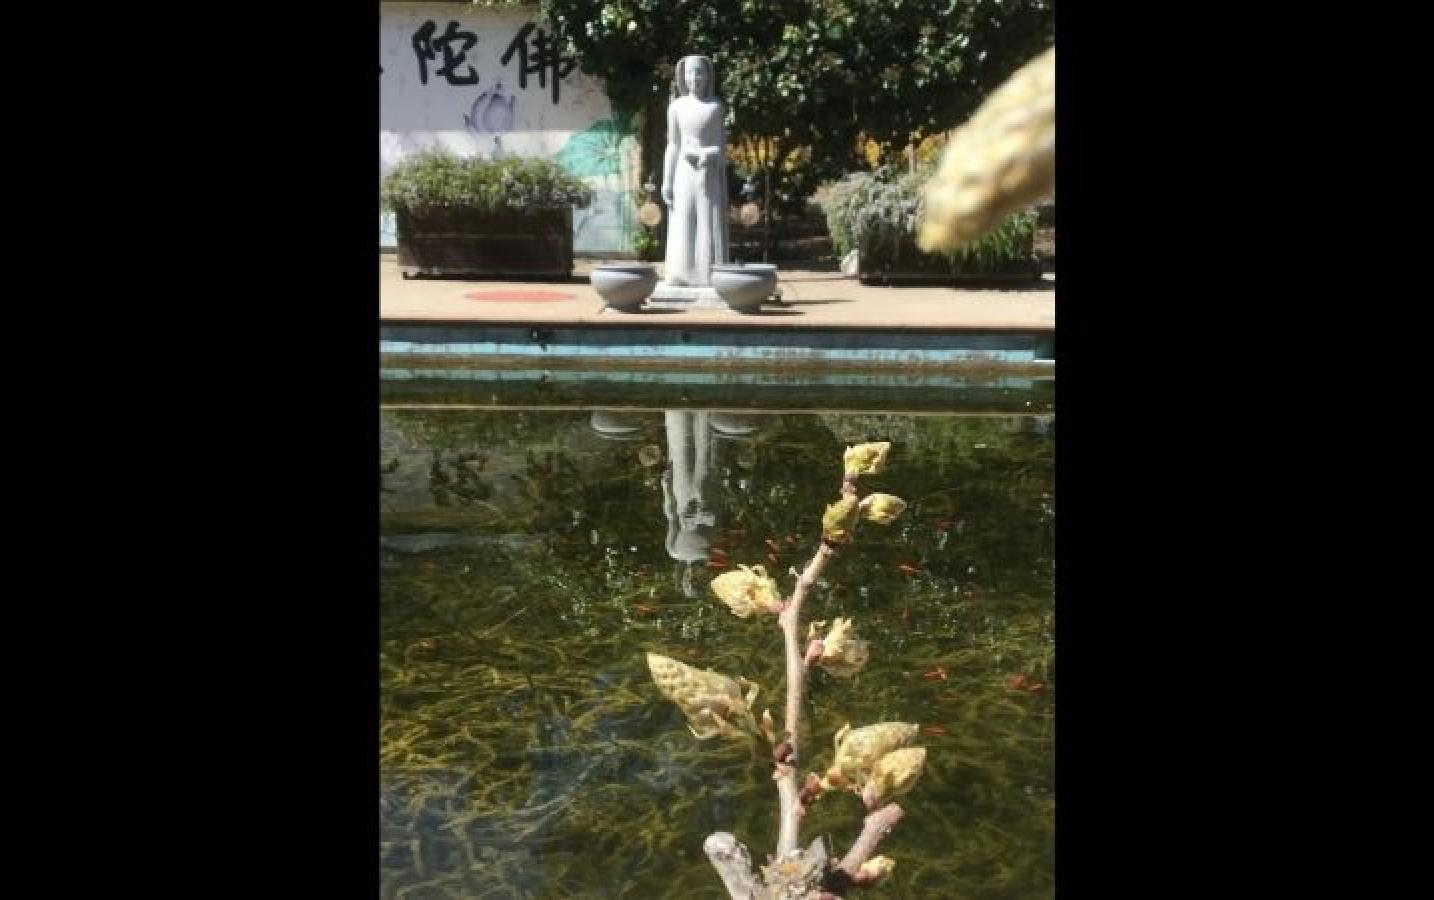 Jin Xiang Shi: Buds from wisteria vine that winds along the fence at the CTTB Lotus Pool. The goldfish in the pond must be glad that spring has arrived. The statue in the background represents Bodhisattva Avalokiteshvara.